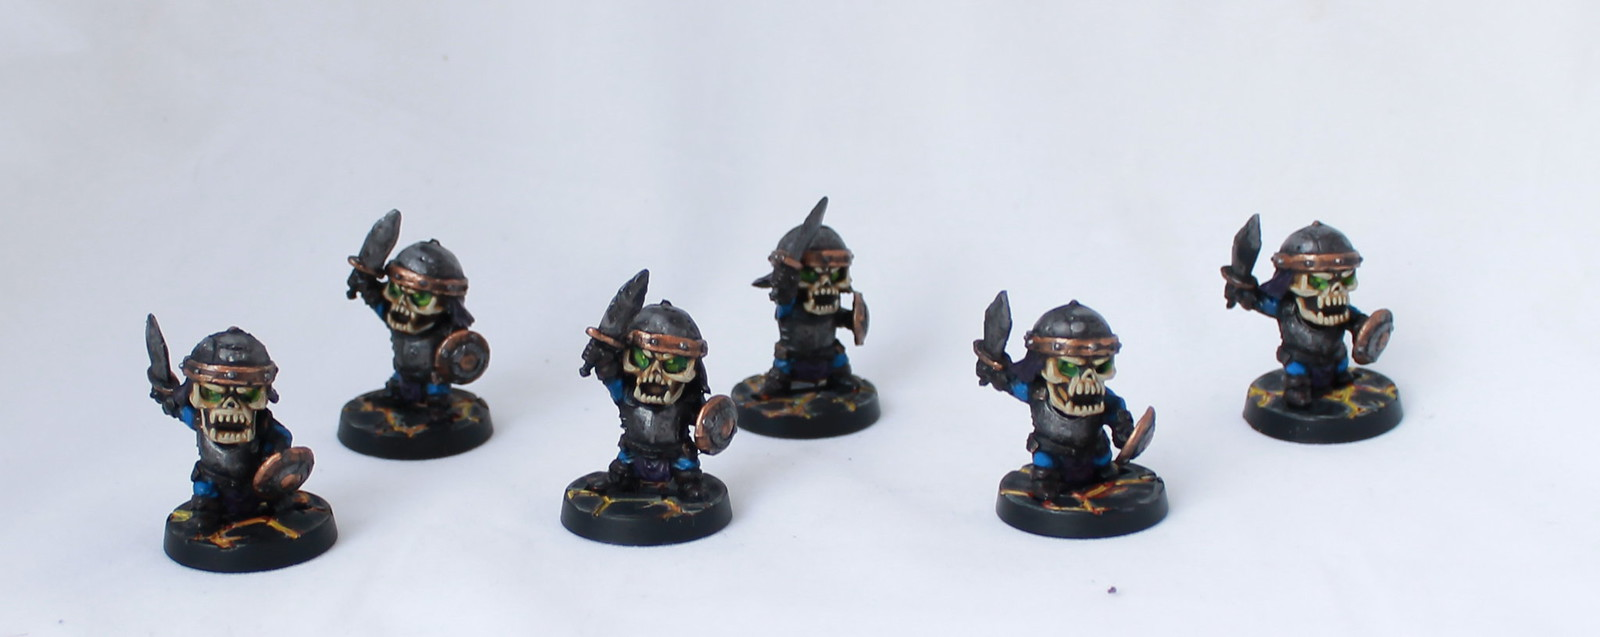 Super Dungeon Explore Shallow Grave Bone Heads Skeletons Painted Chibi